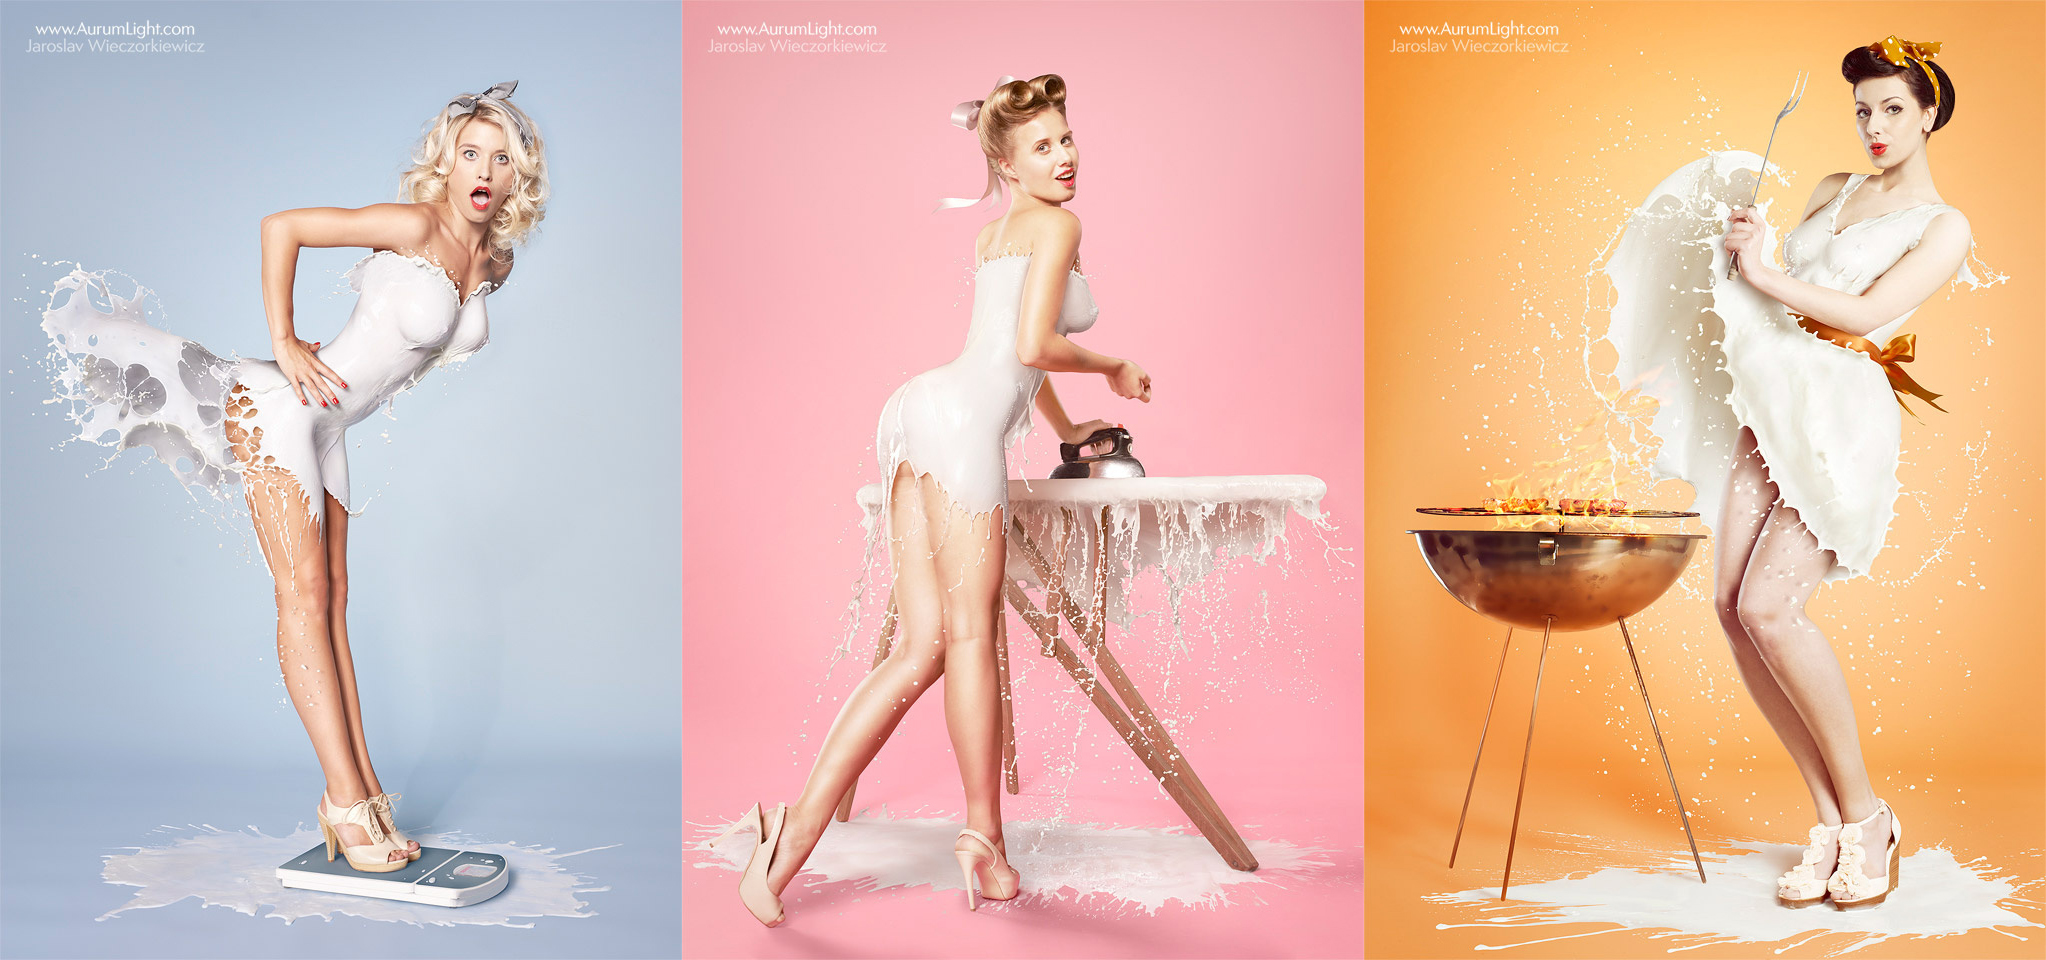 Milky PinUps: The Risqué Milk Splash Series that Took Over the Web (NSFW)